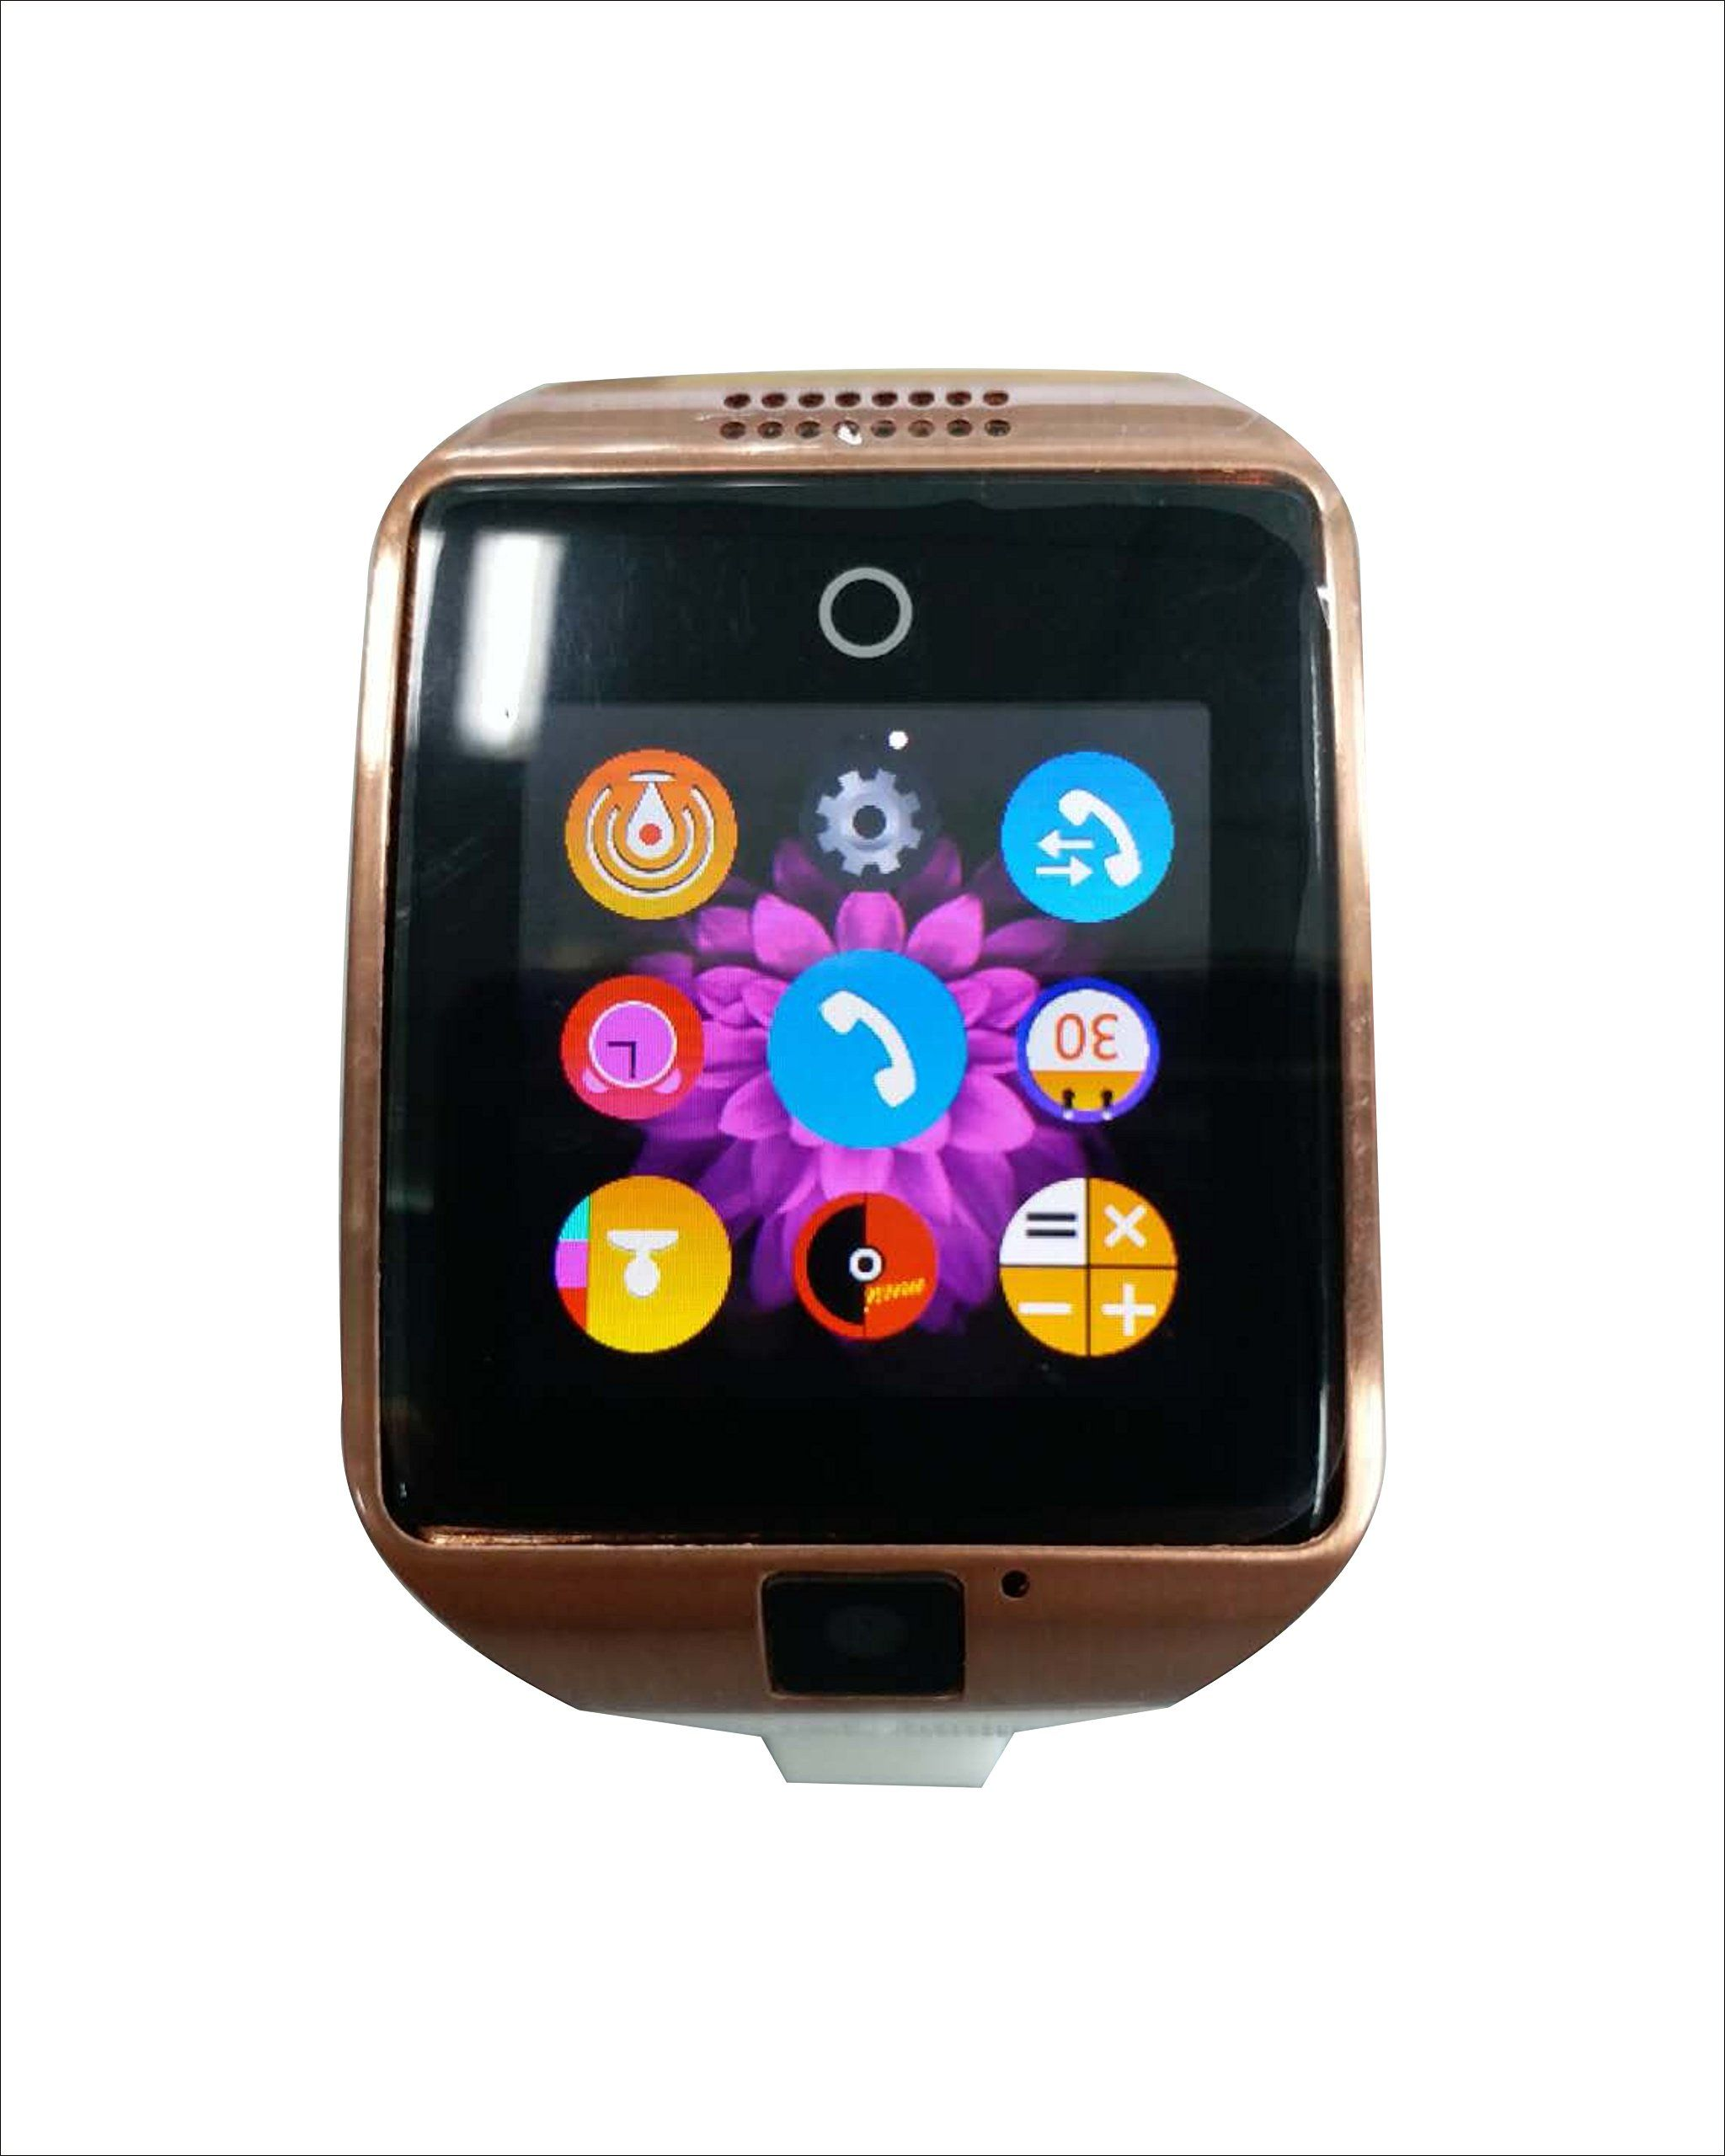 watches online accessories phones tablets samsung mu category sm gear archives fit mauritius mobile shop galaxy product phone black in smart